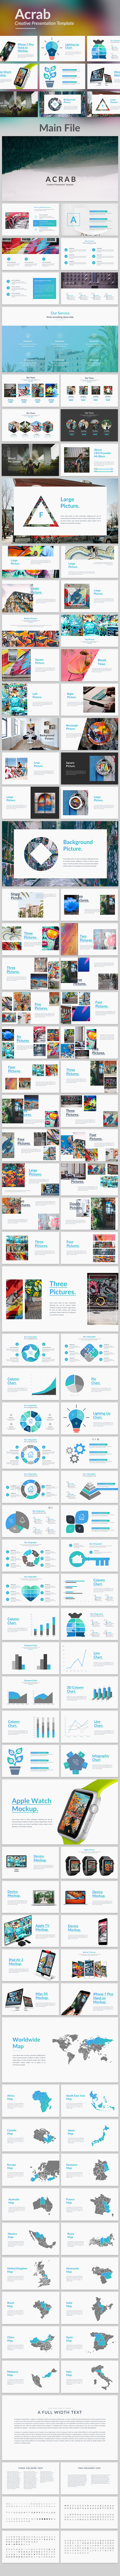 Acrab - Creative Google Slide Template - Google Slides Presentation Templates